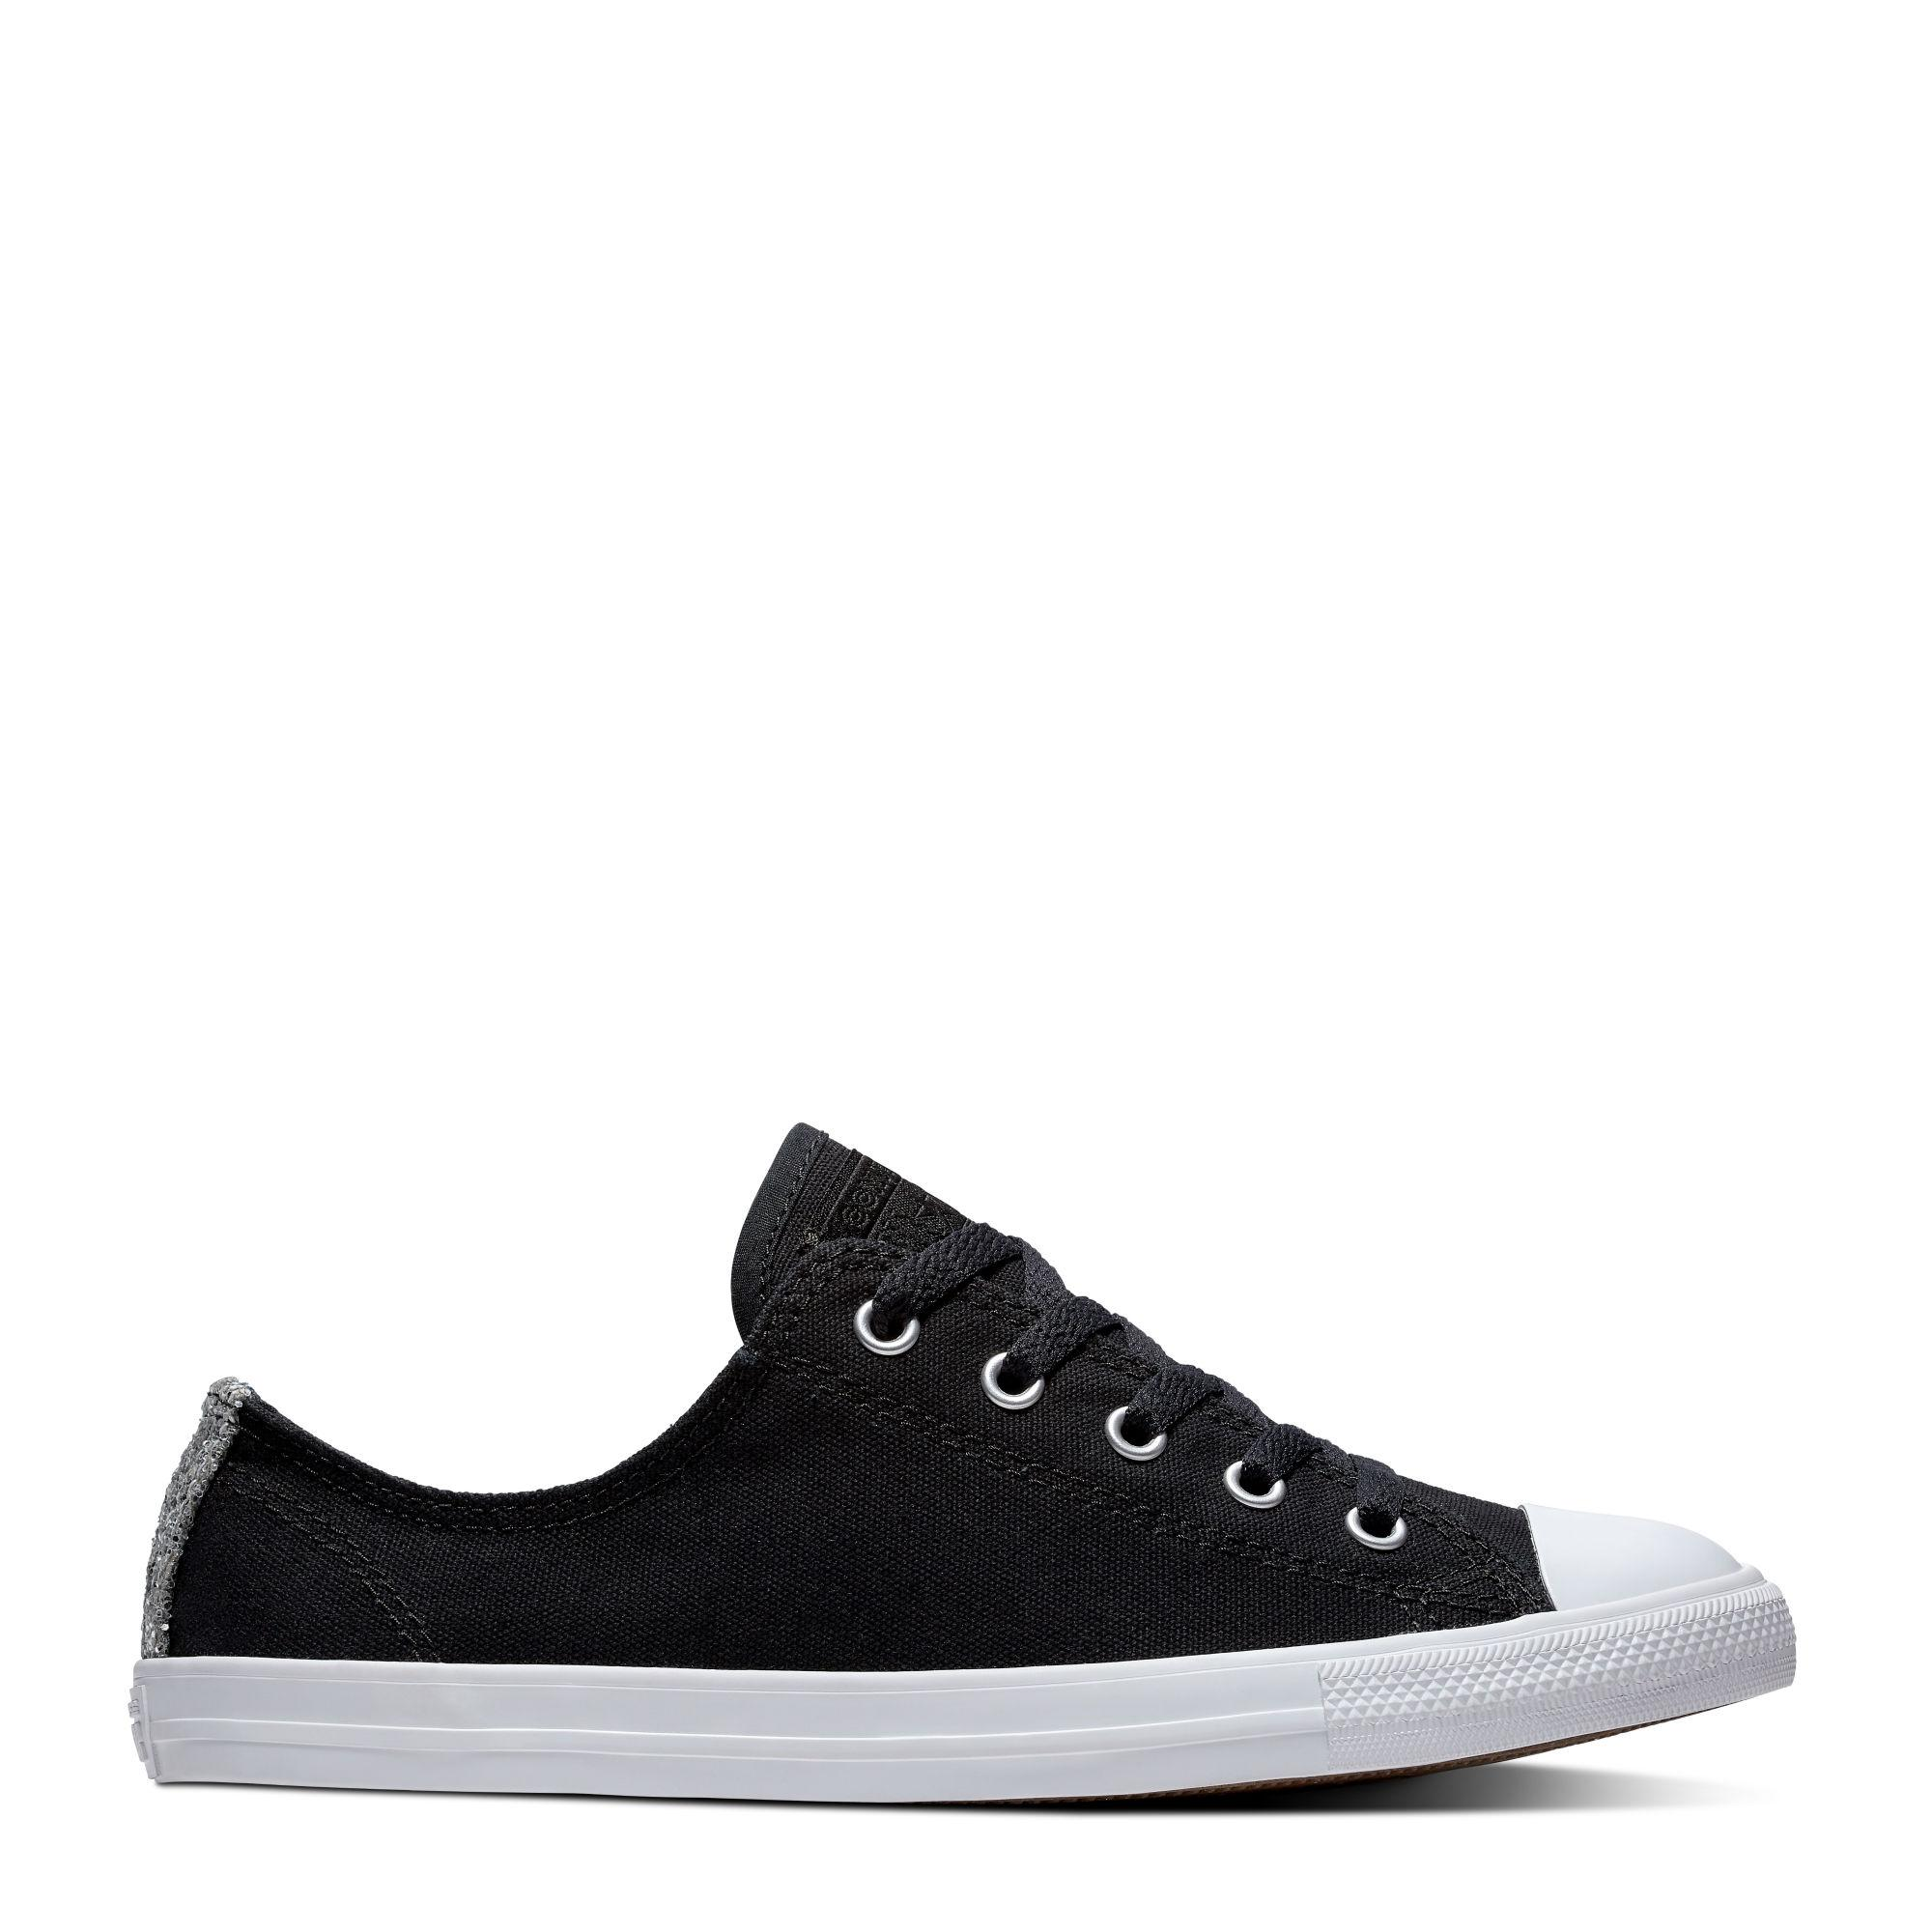 ddd24130fcc  SALE  CONVERSE CHUCK TAYLOR ALL STAR DAINTY OX - BLACK SILVER WHITE